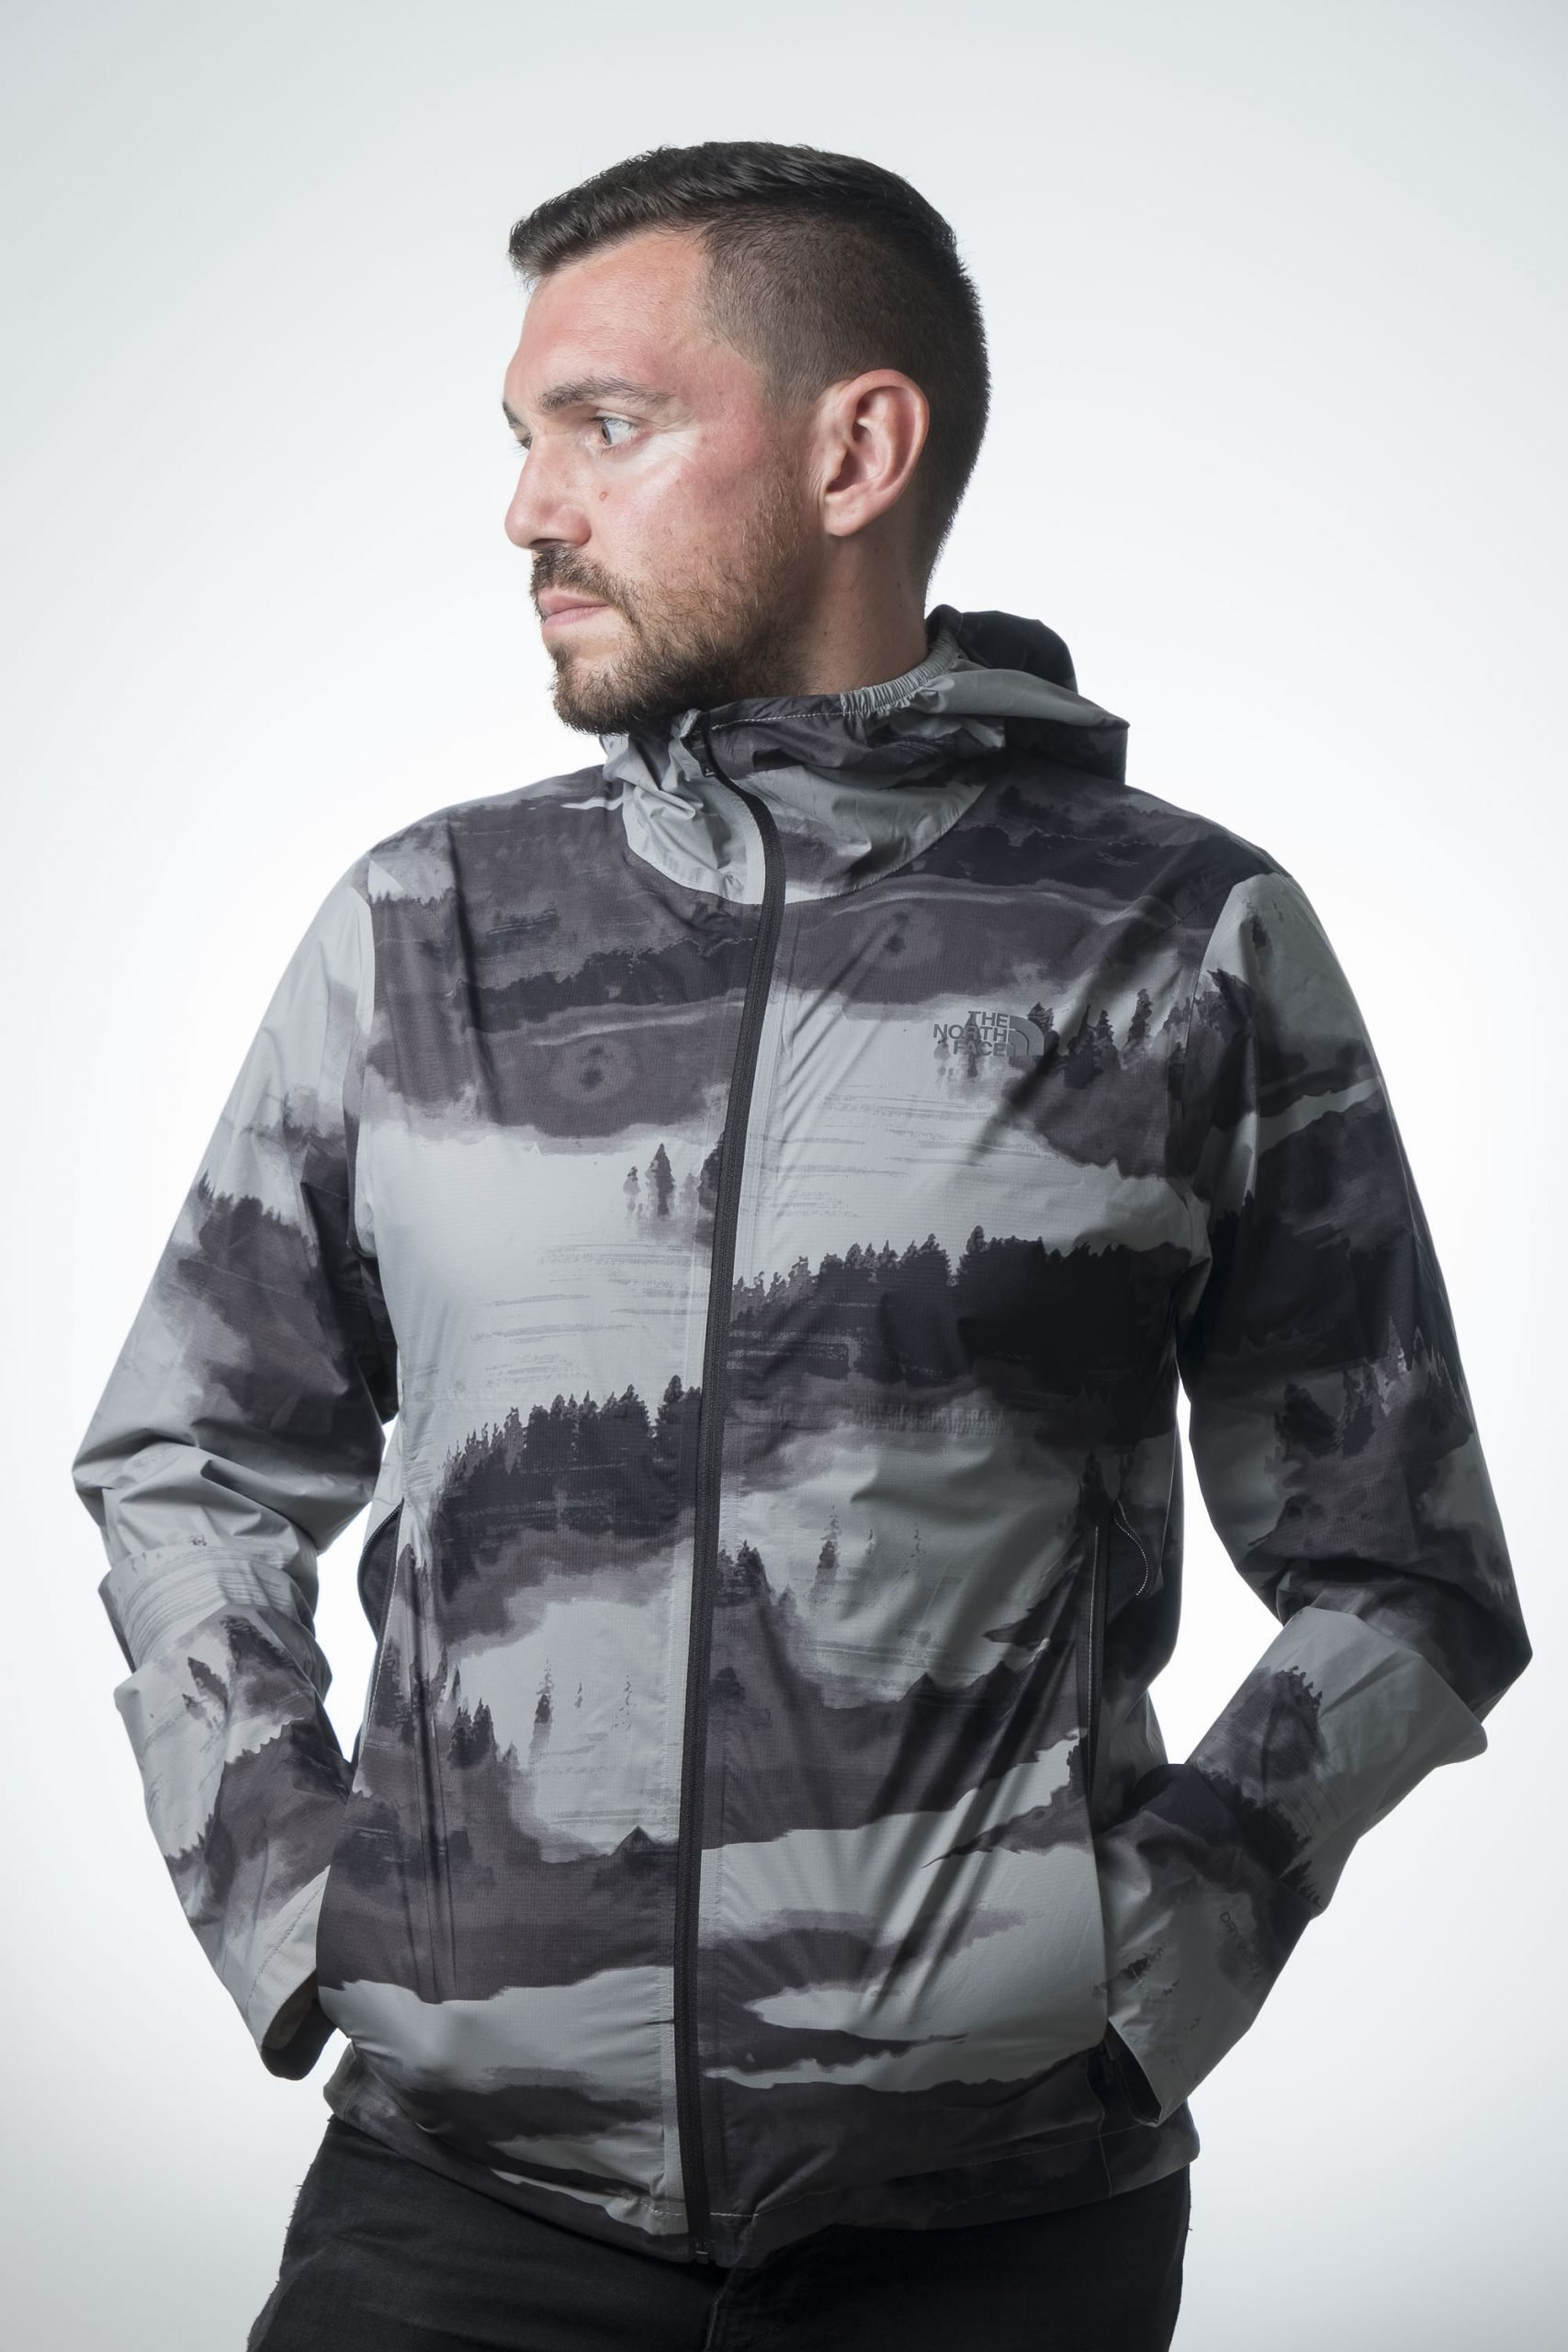 Stormy Trail Jacket - product review - The North Face - Singapore